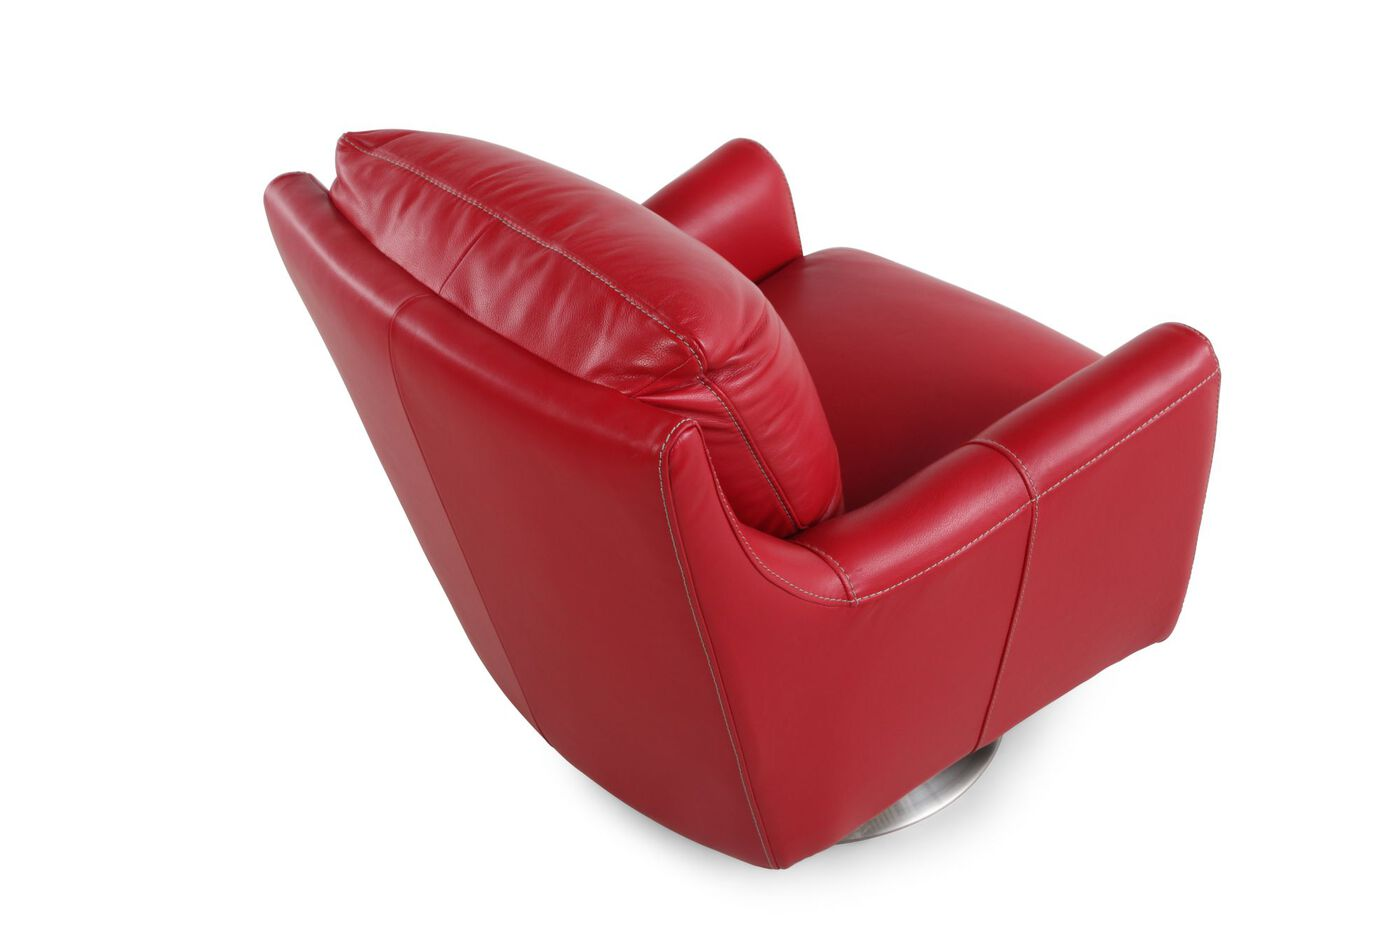 La z boy xavier red leather swivel chair mathis brothers for Xavie z